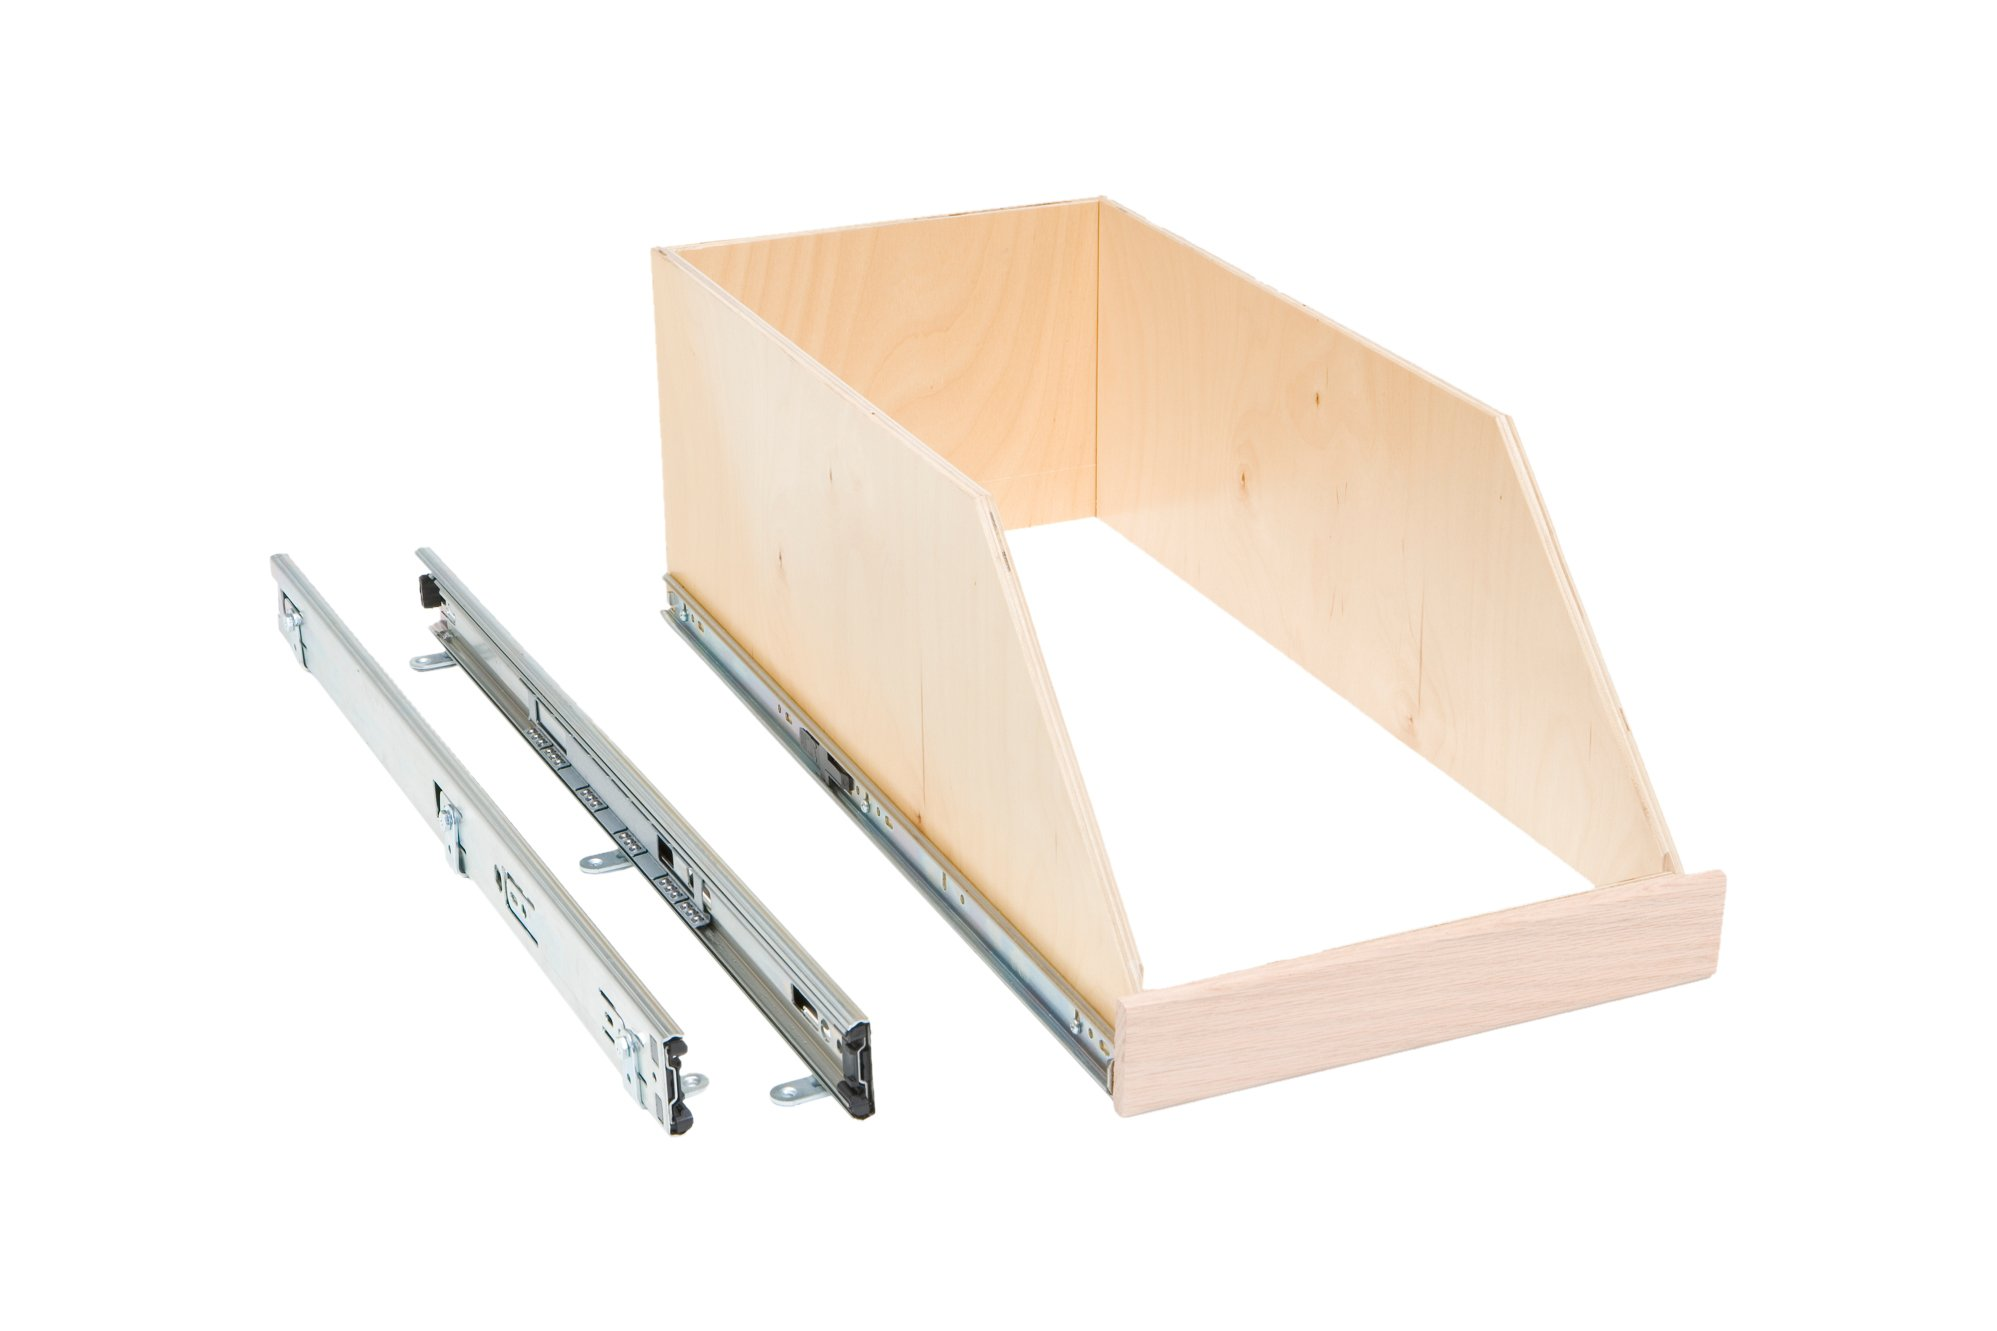 """Slide-A-Shelf AMC-PL-HSO-12W22D8H-F Baltic Birch 8"""" Sided Slide-Out Shelf with Full Extension, 12"""" x 22"""" x 8"""""""